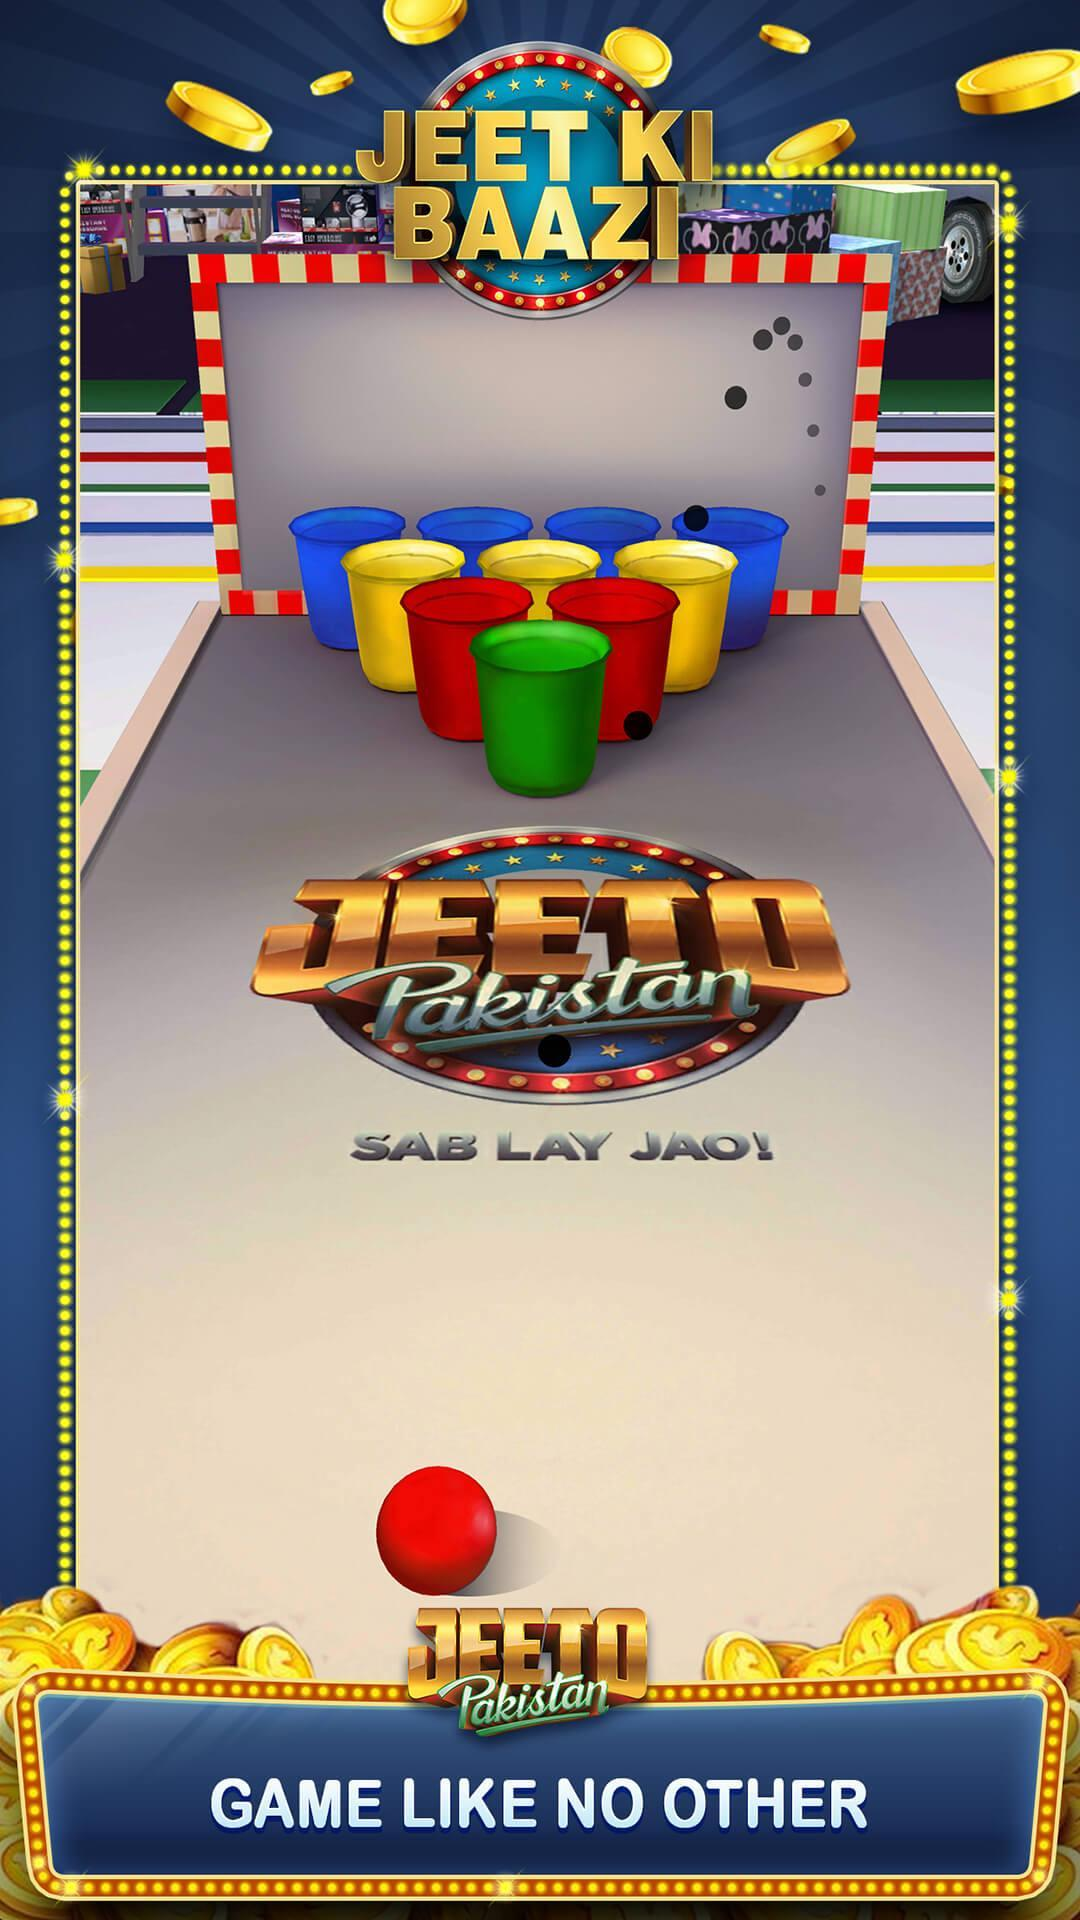 Jeeto Pakistan for Android - APK Download